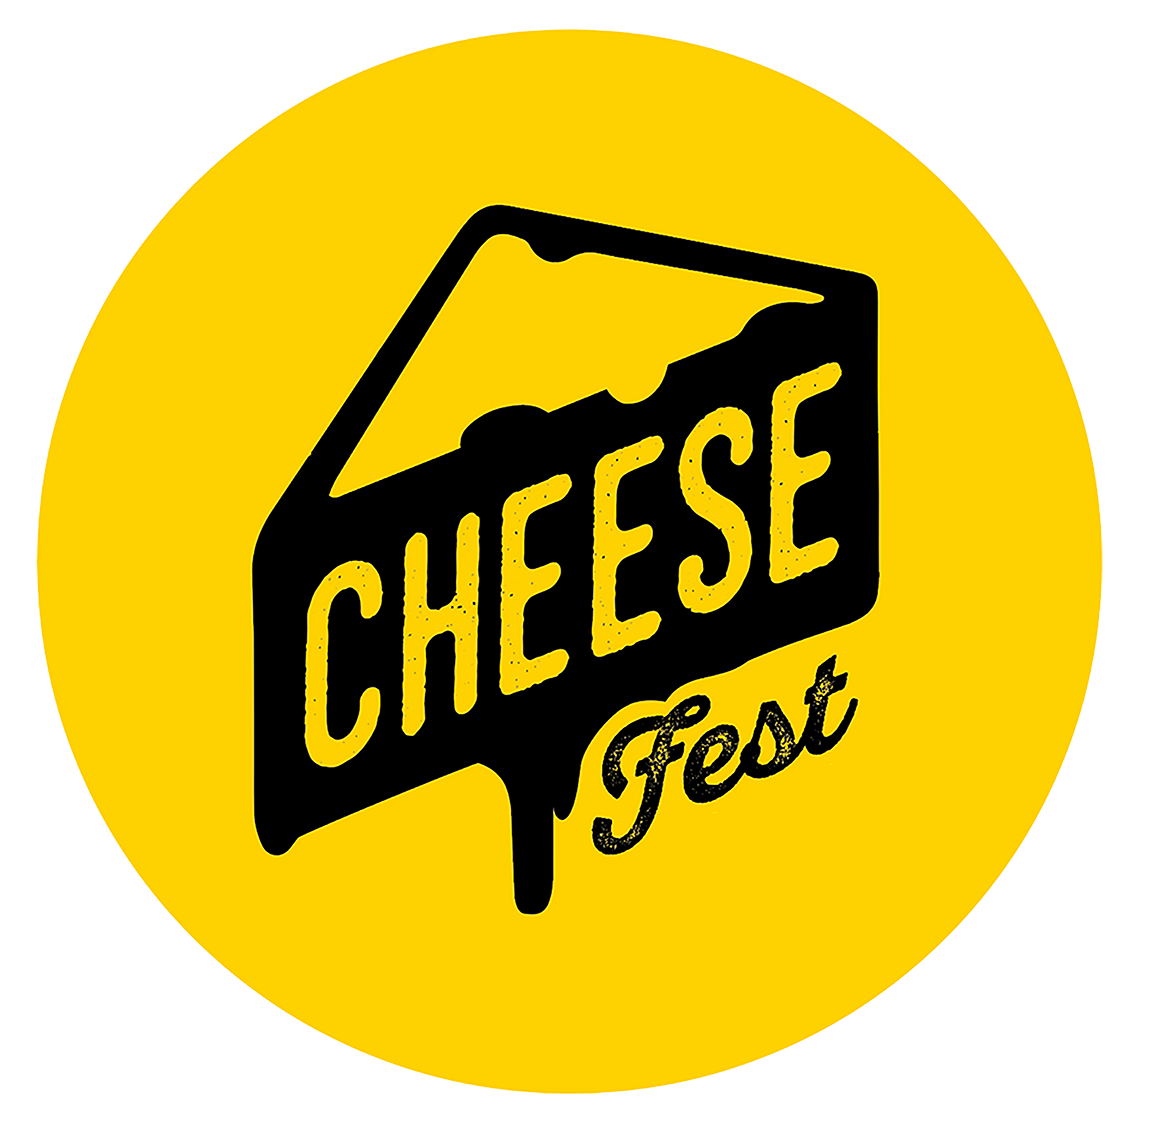 East of England Arena secures Cheese Fest 2018.